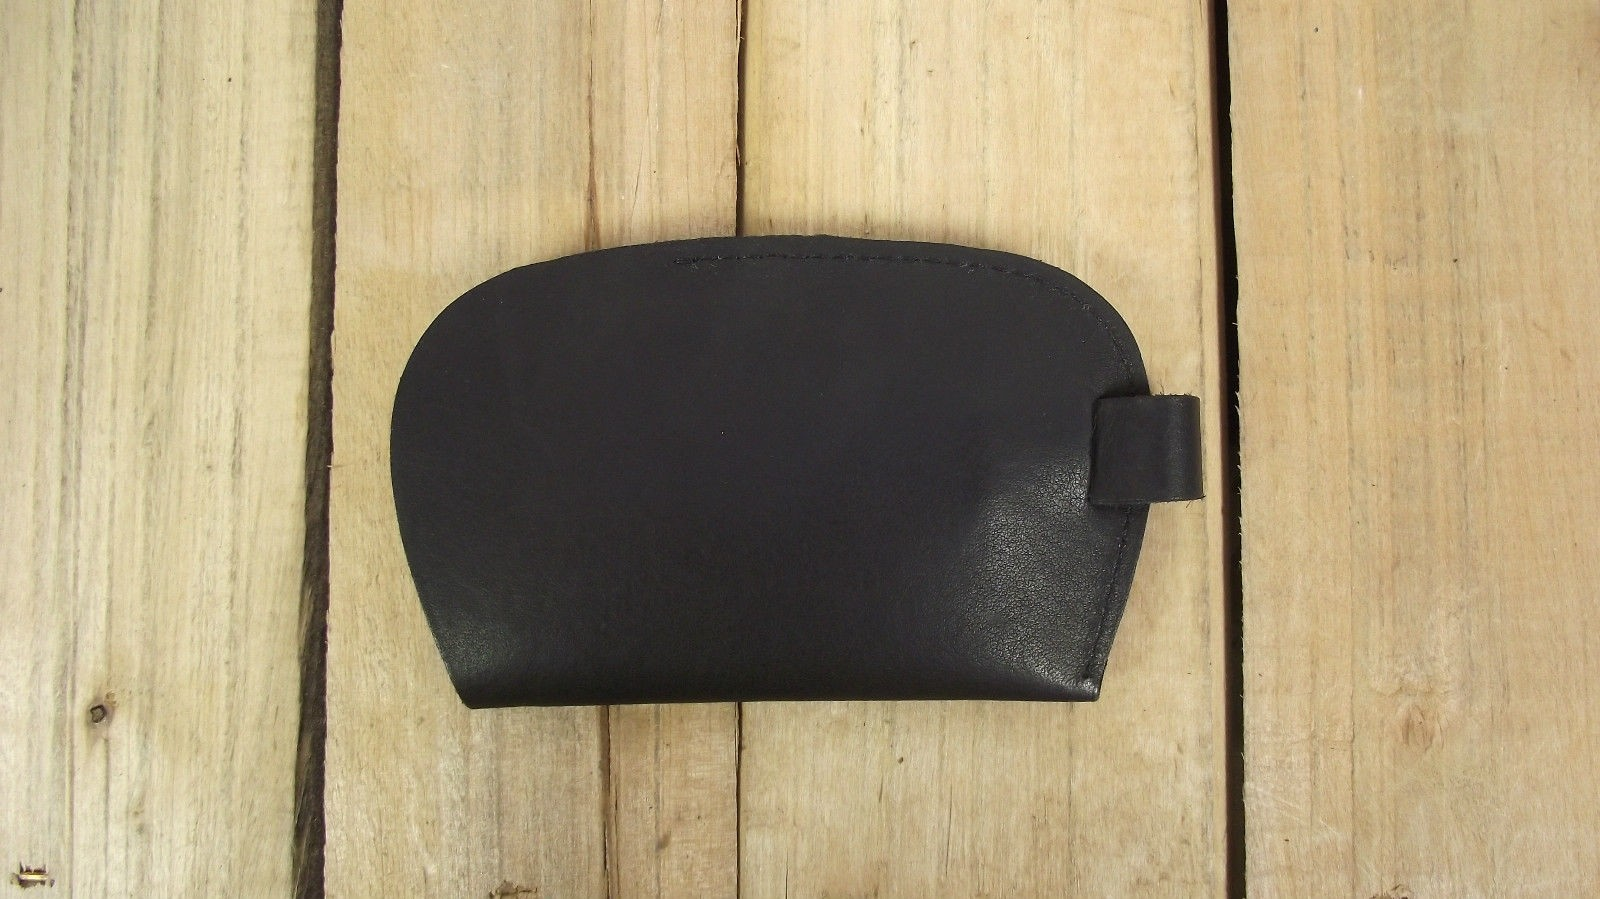 BLACK LEATHER KEY HOLDER, PERSONALISE WITH YOUR TELEPHONE NUMBER (IF LOST)